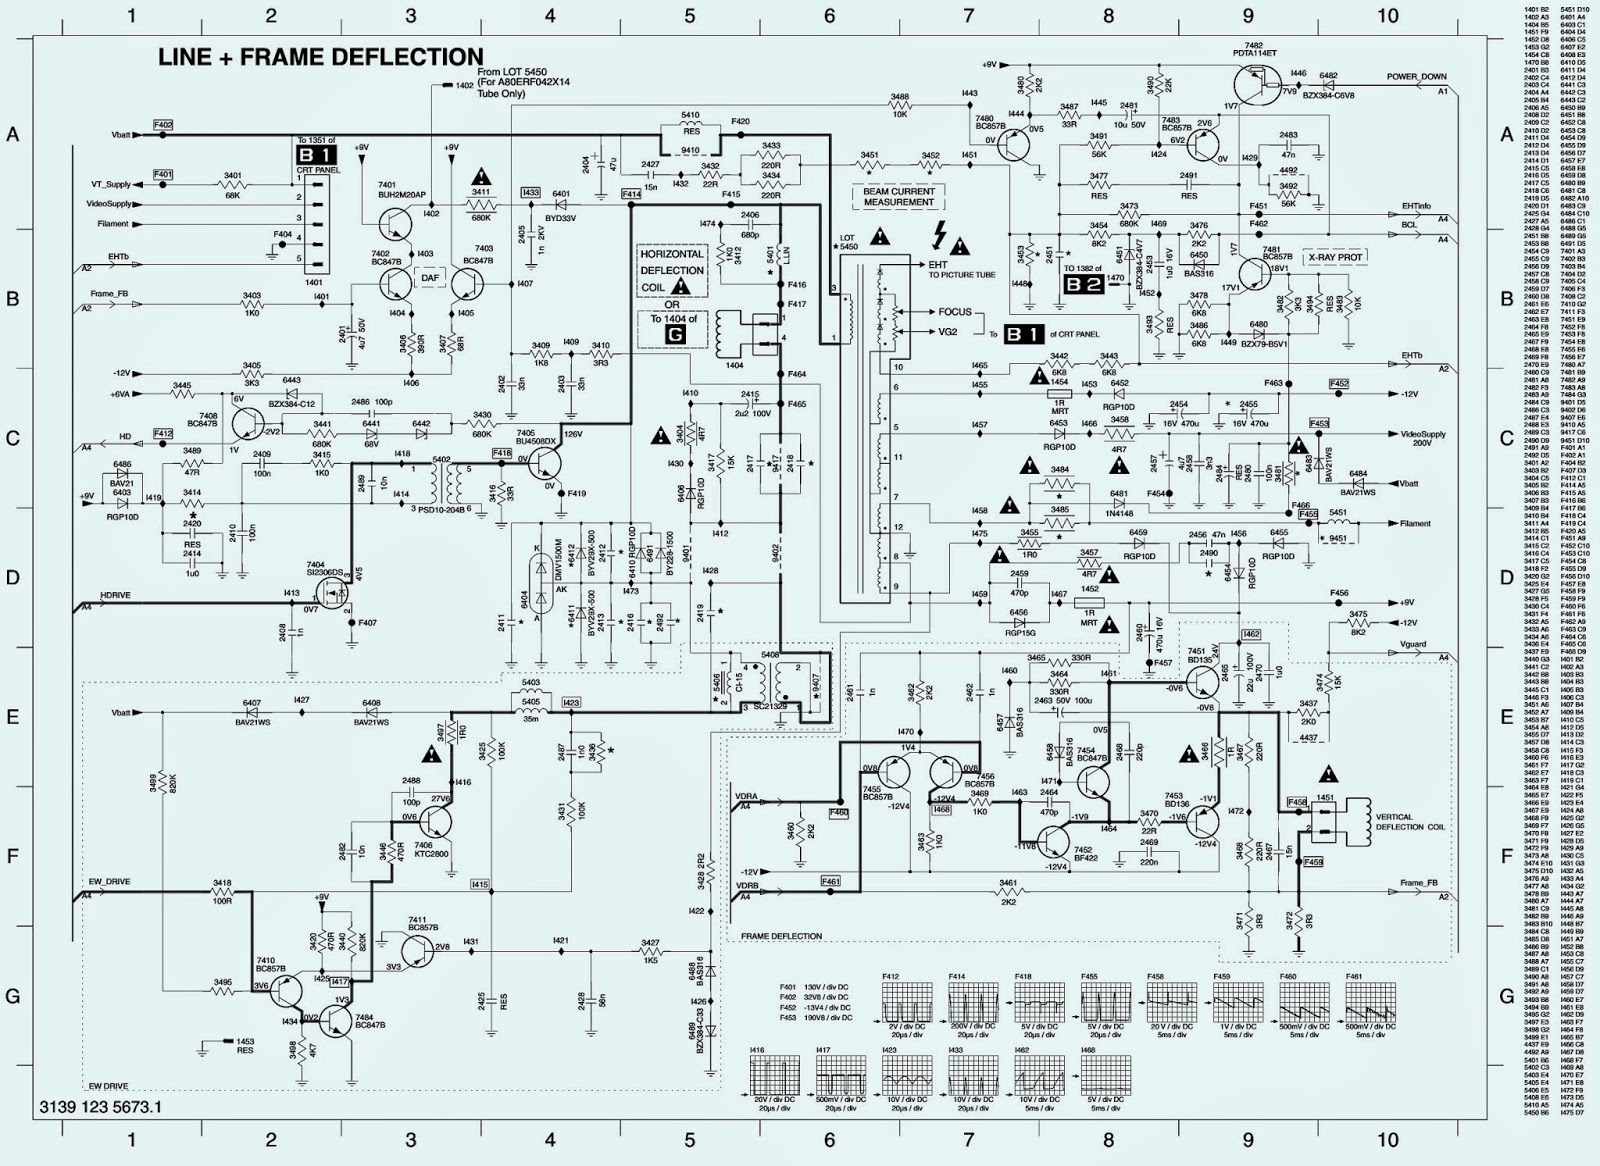 philips tv wiring diagram completed wiring diagrams u2022 rh vojvodinaslovakart com cable tv wiring diagram tv and component wiring guide [ 1600 x 1166 Pixel ]